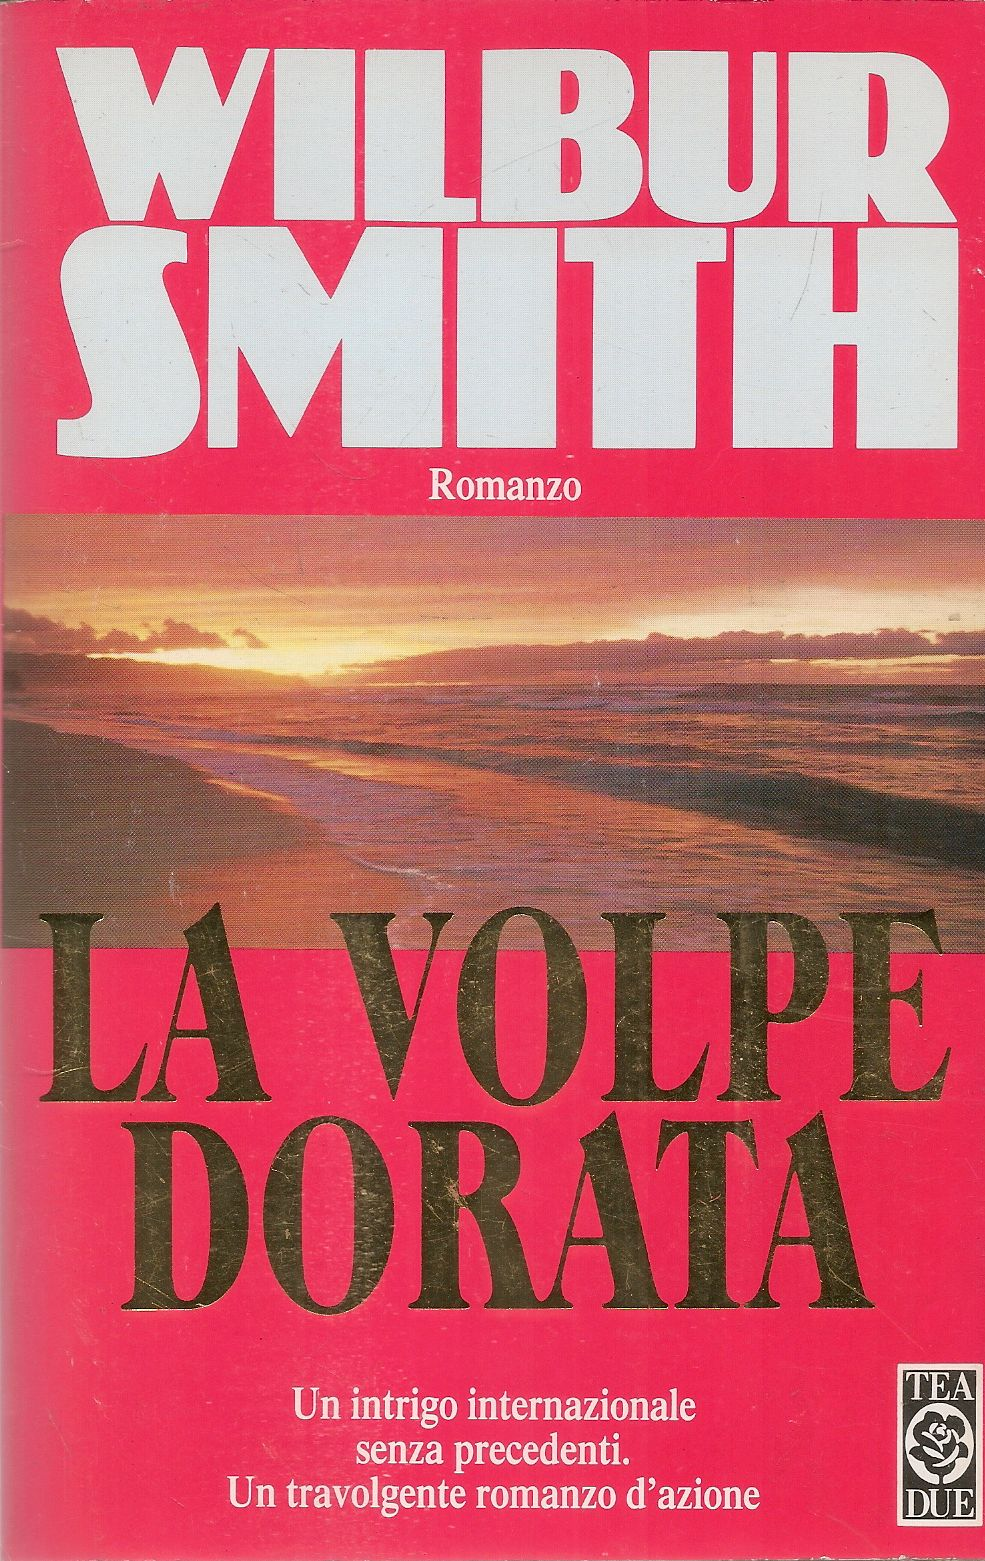 LA VOLPE DORATA - WILBUR SMITH - TEA DUE 1993